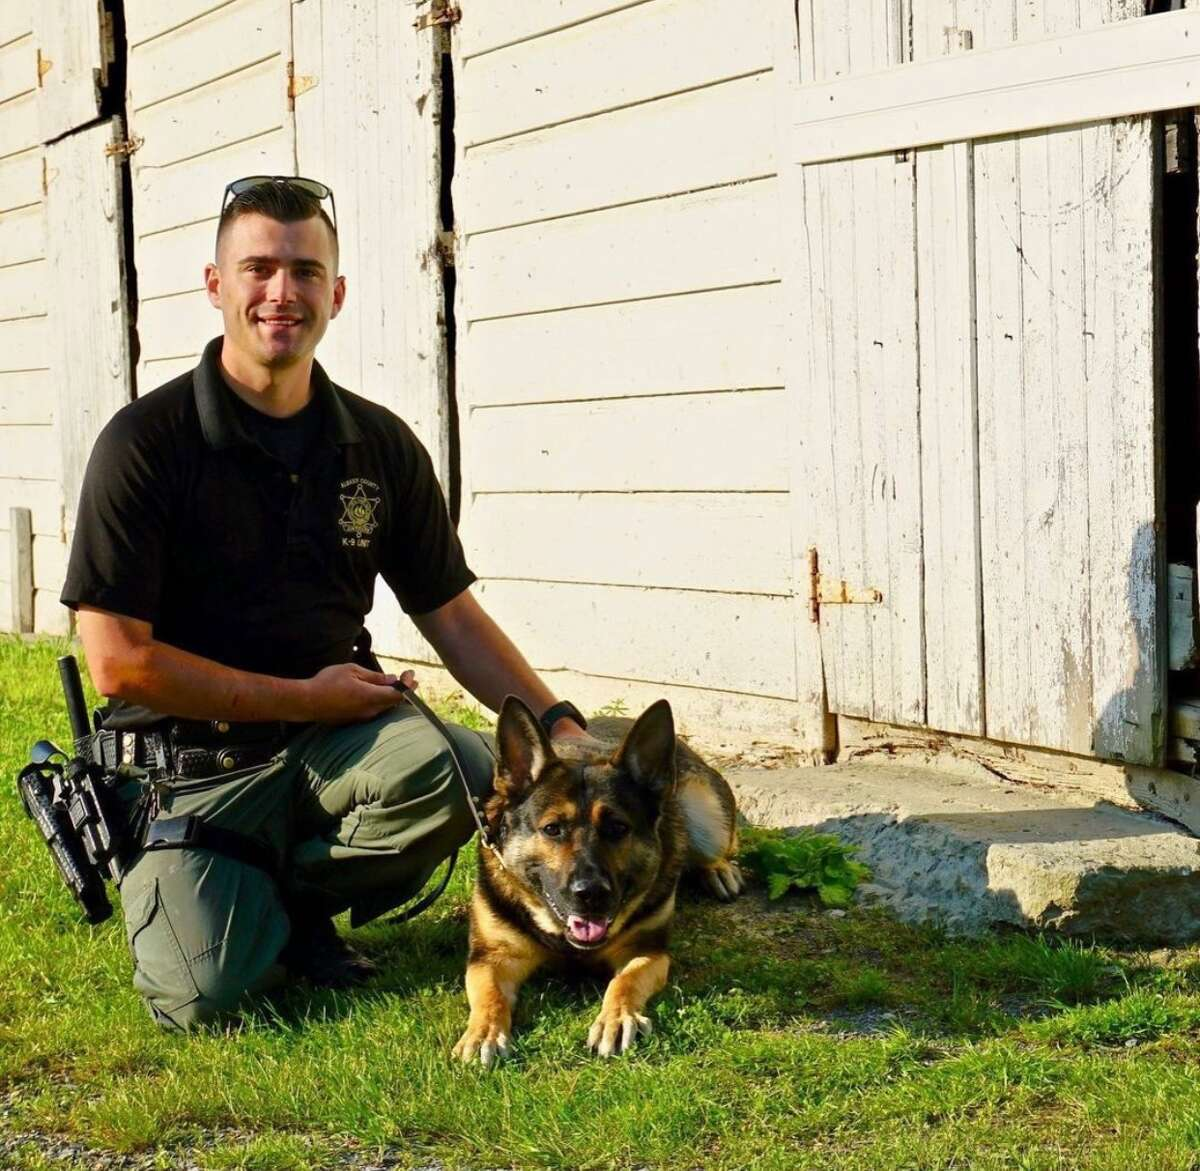 Deputy Joseph Iachettahas worked at the Albany County Sheriff's Office for seven years, said Sheriff Craig Apple.